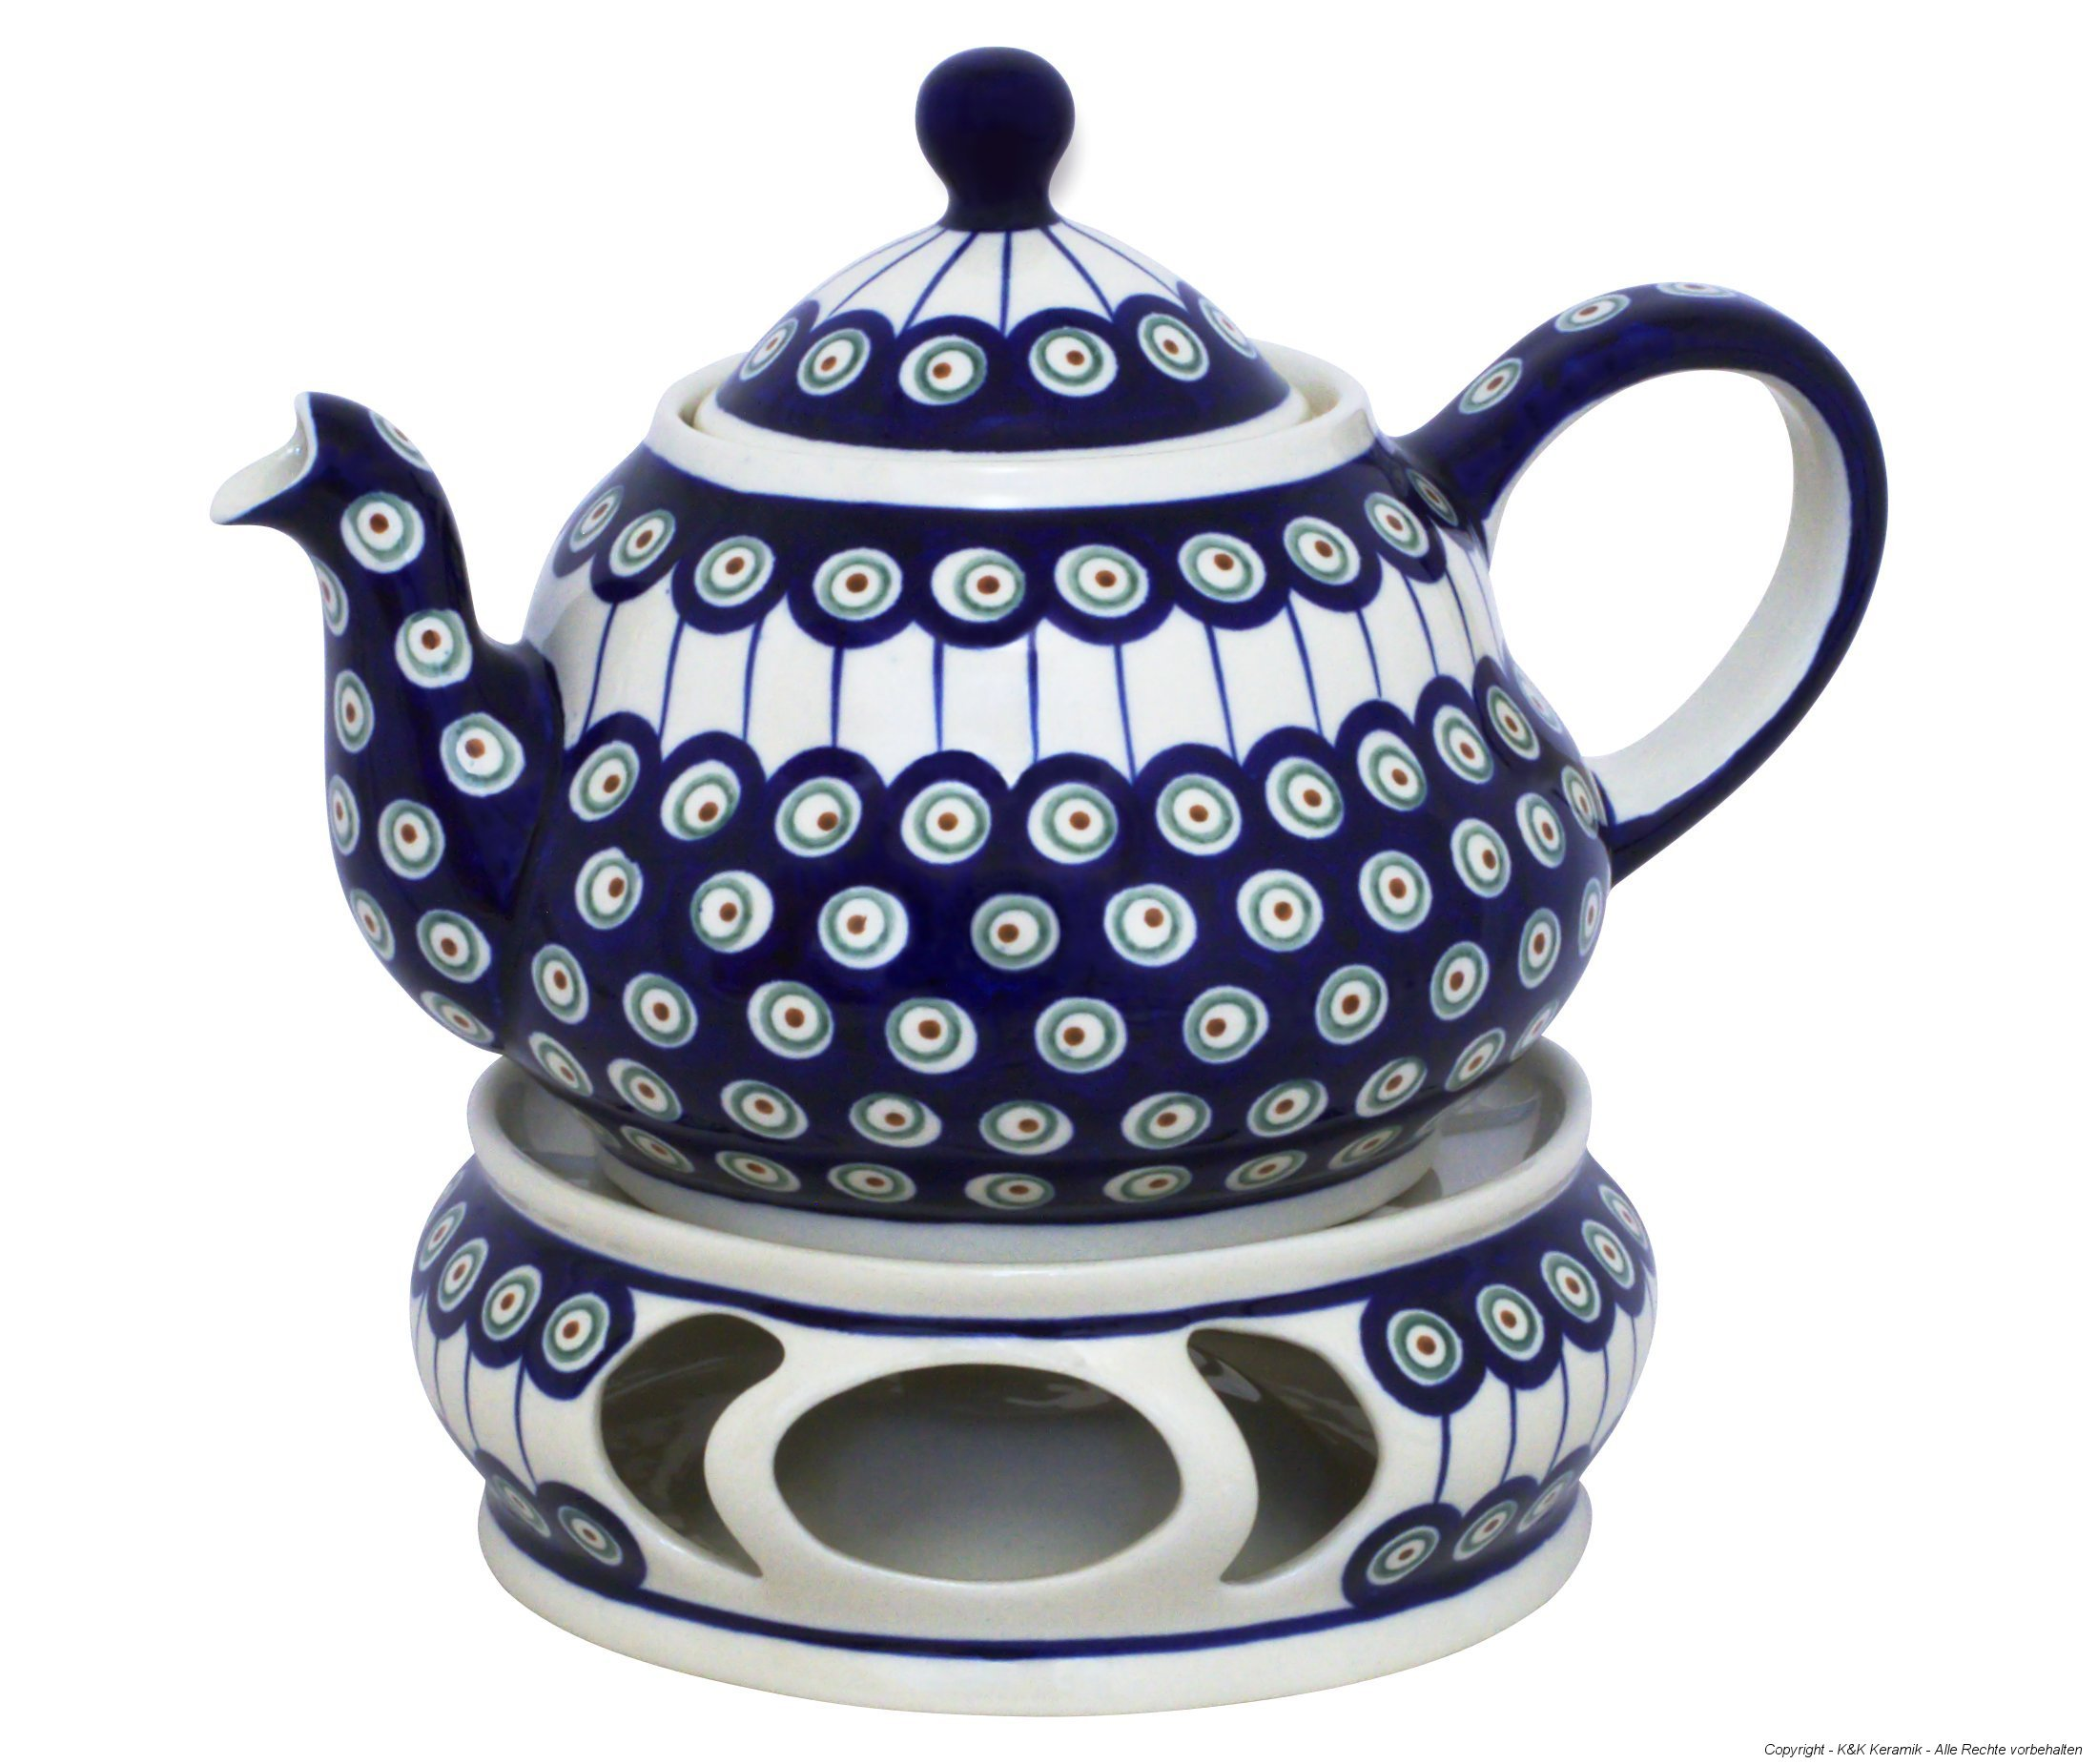 Boleslawiec Pottery Teepot 2.0 L with Warmer, Original Bunzlauer Keramik, Decor 8